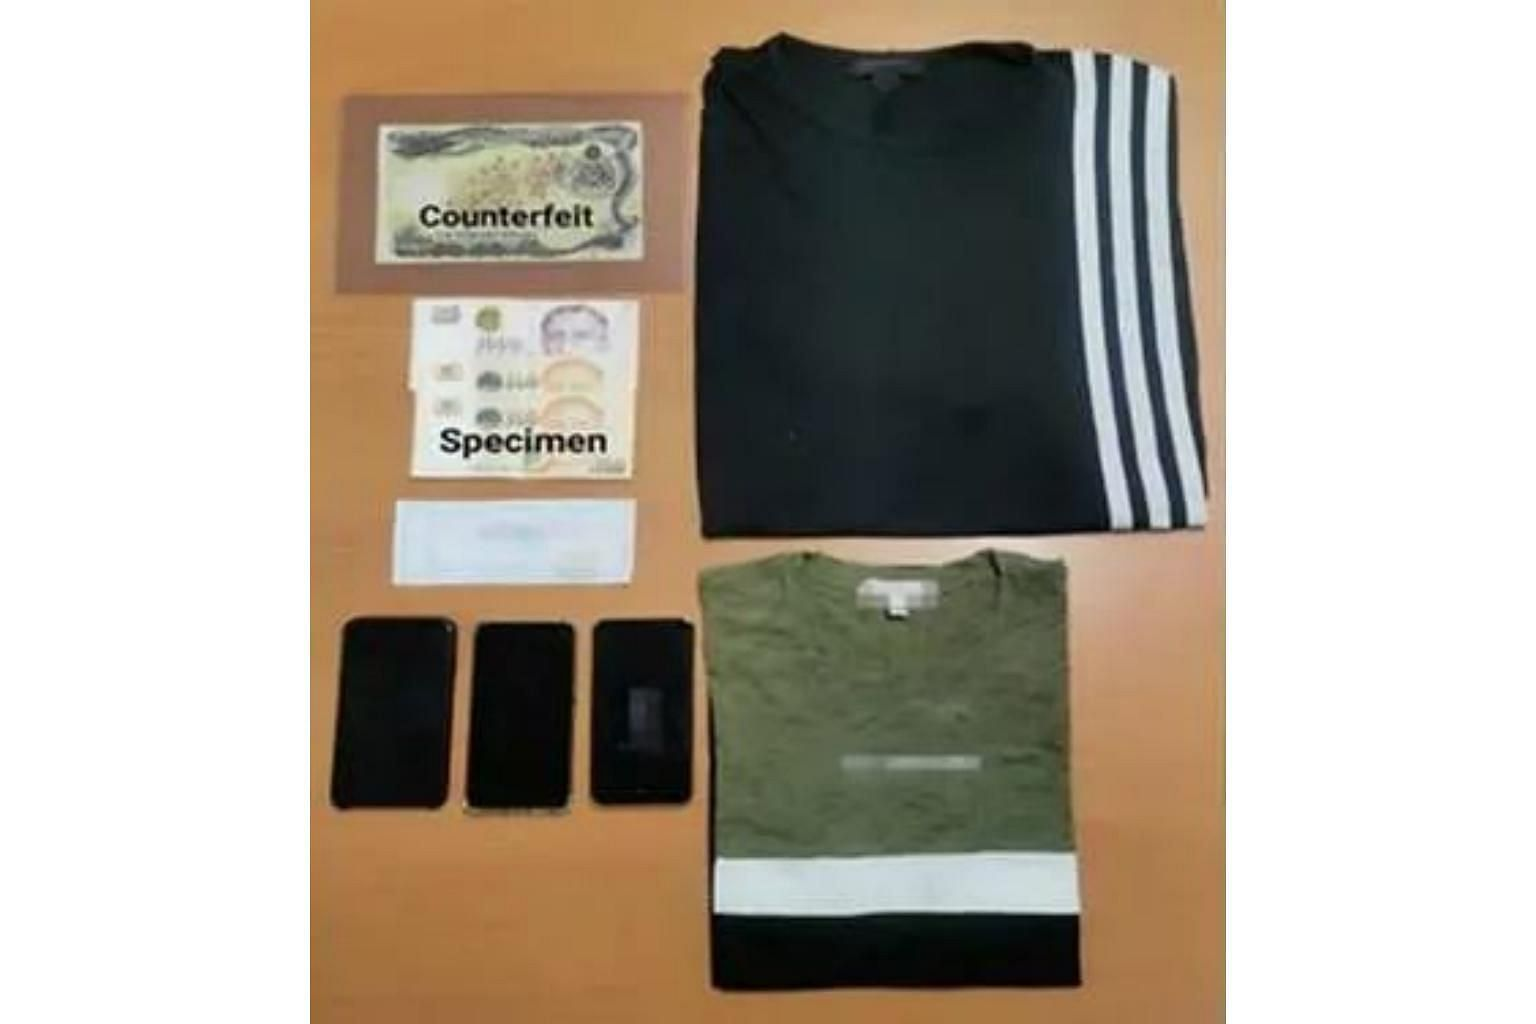 Latest COUNTERFEITS/FORGERY | The Straits Times